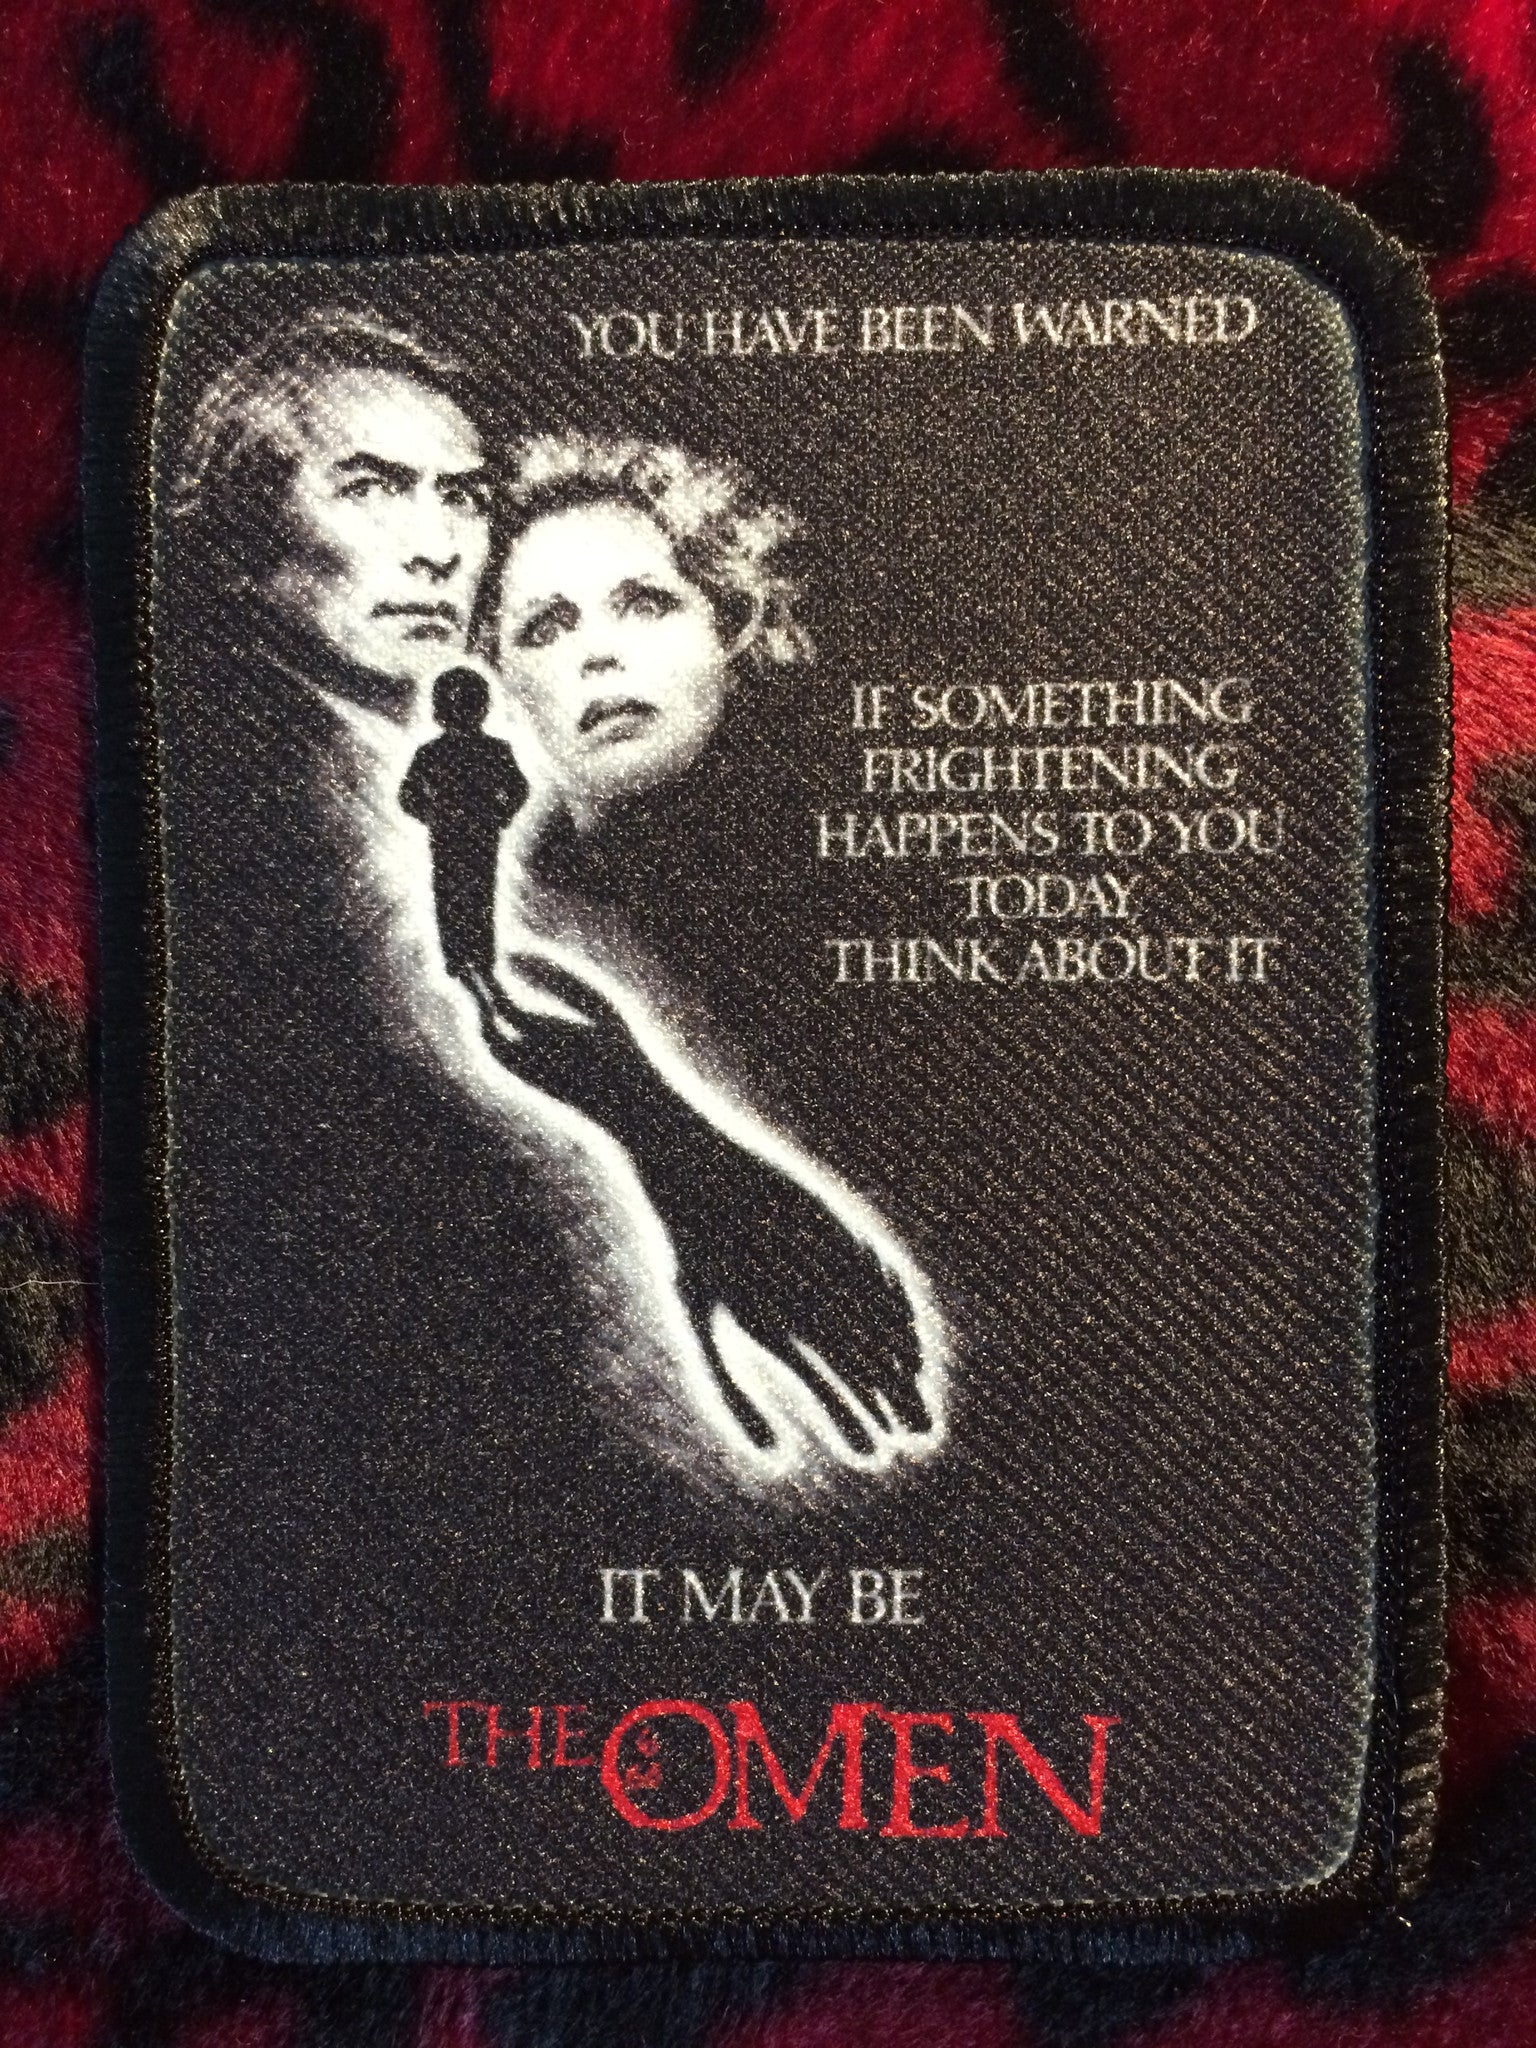 The Omen Patch